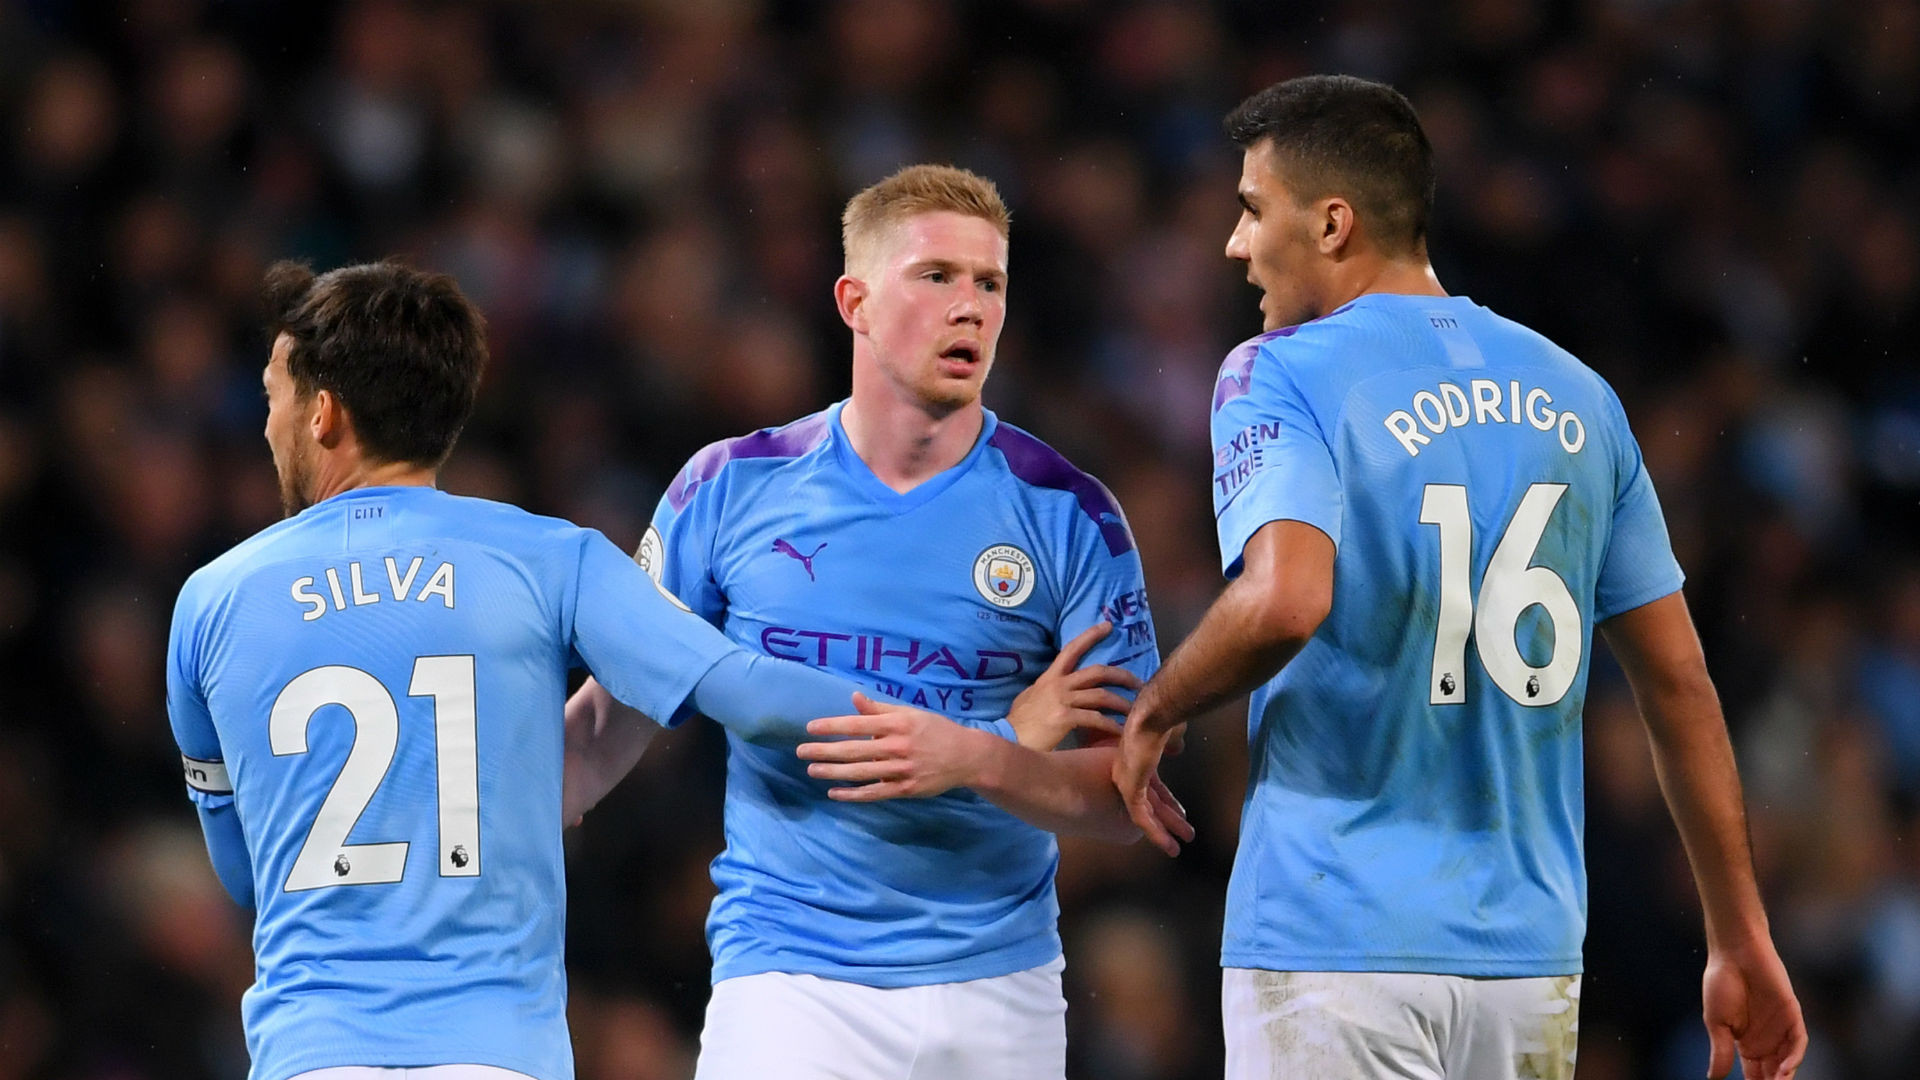 De Bruyne sees himself as a leader at Manchester City